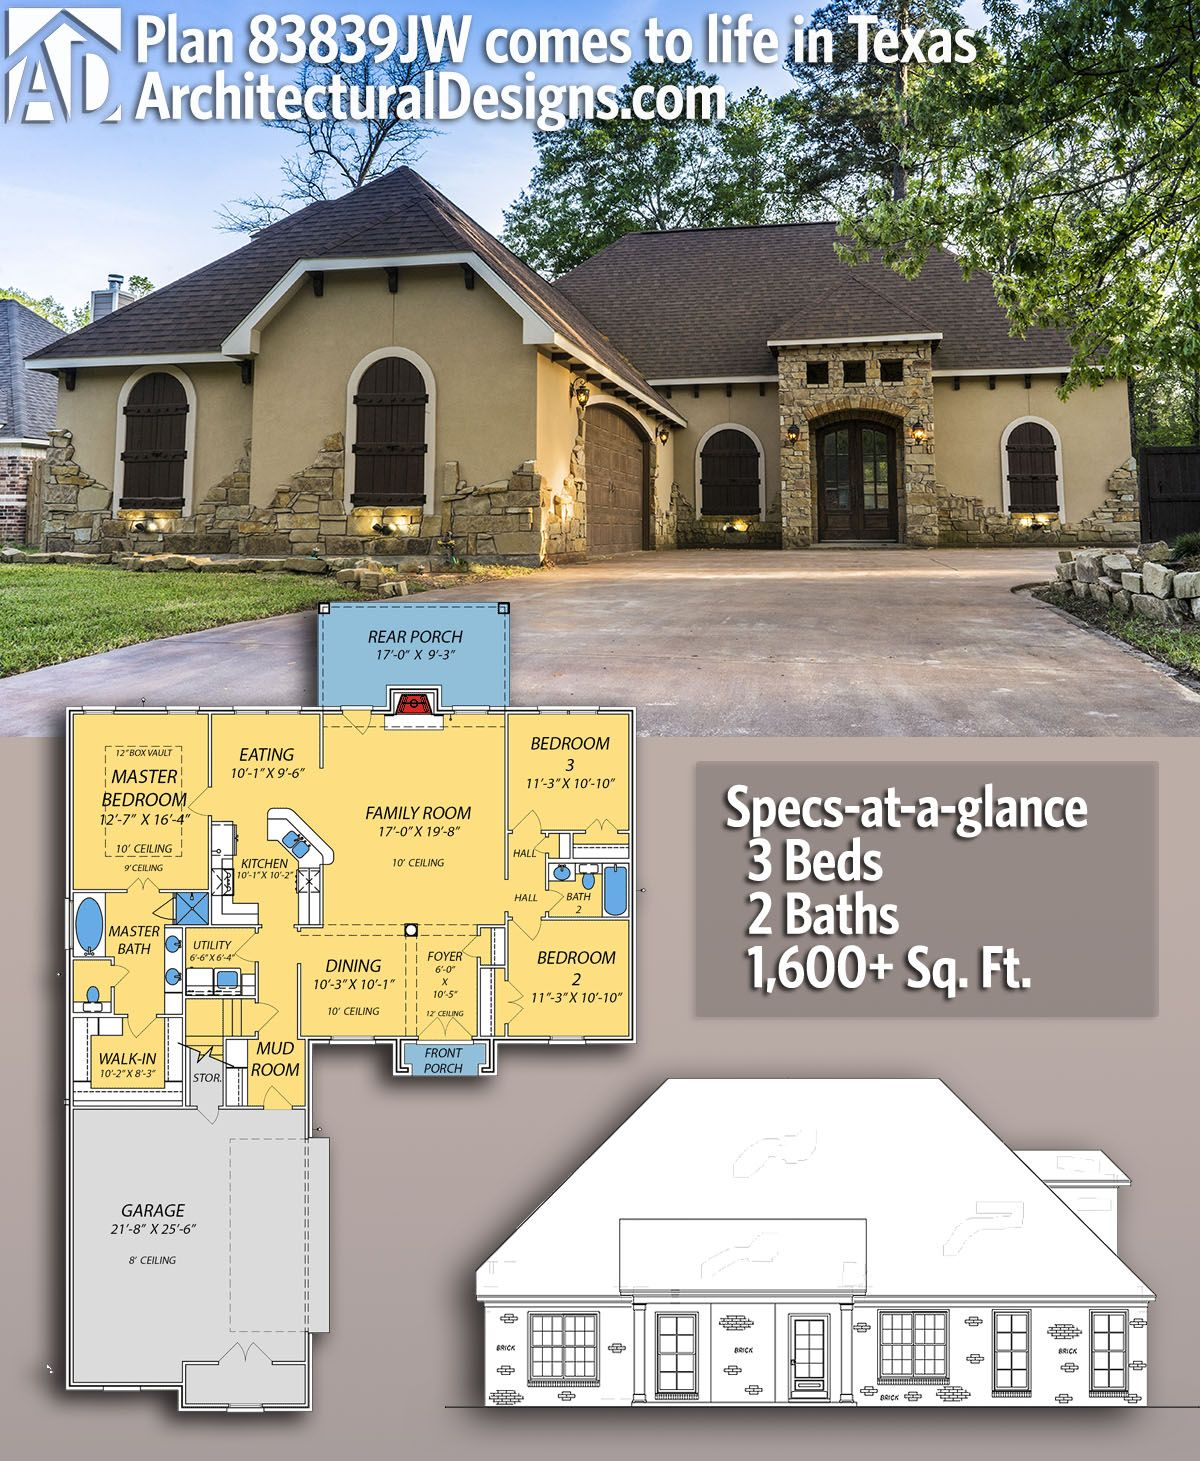 Plan 83839jw European House Plan With Courtyard Garage Courtyard House Plans Architectural Design House Plans European House